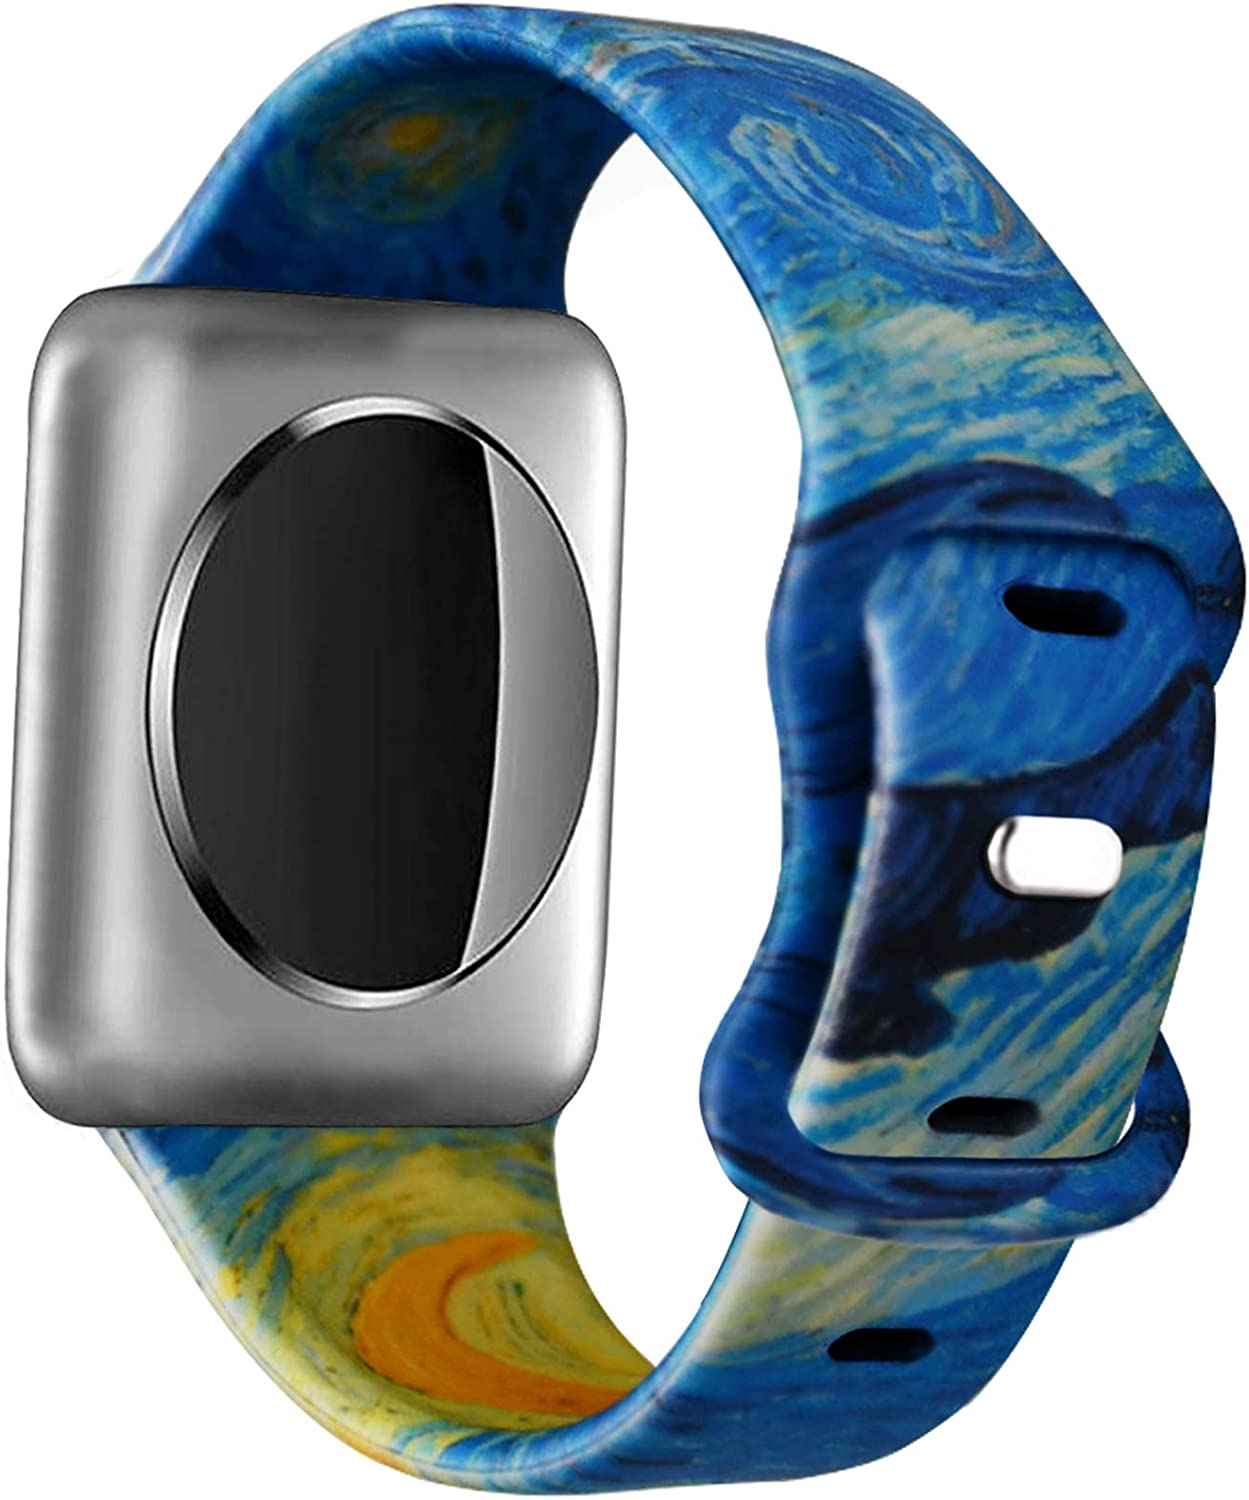 Idealiveny Silicone Band Compatible with iWatch Band 38mm 40mm 42mm 44mm Women Sports Strap Rubber Replacement for Iwatch Band Series 5 4 3 2 1 Double Side Print